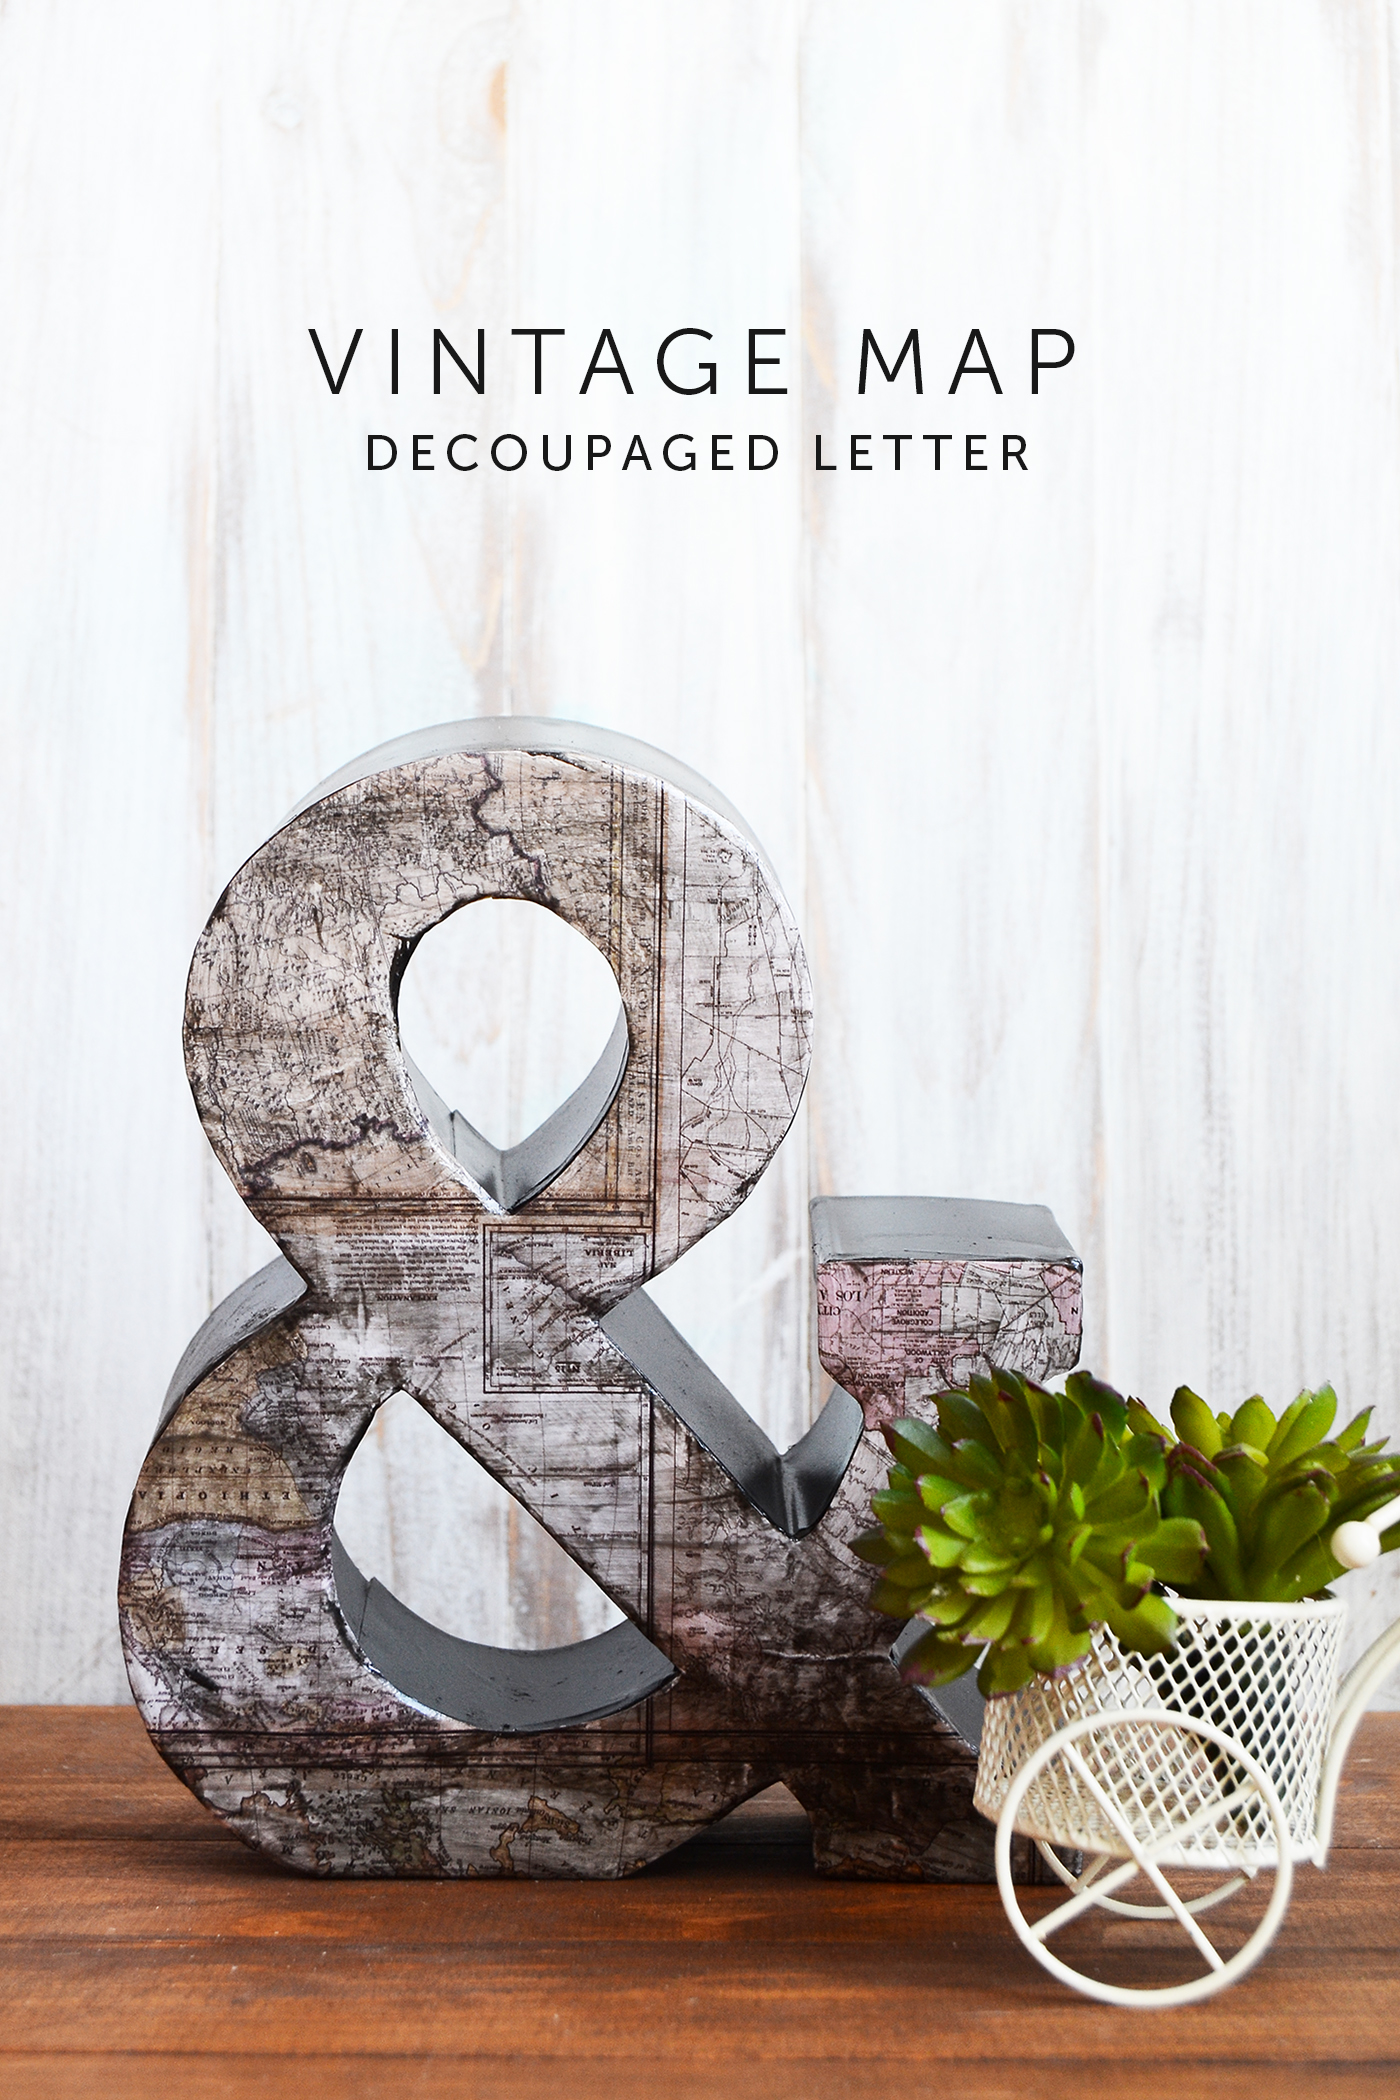 Vintage Map Decoupage Letter Mod Podge Rocks